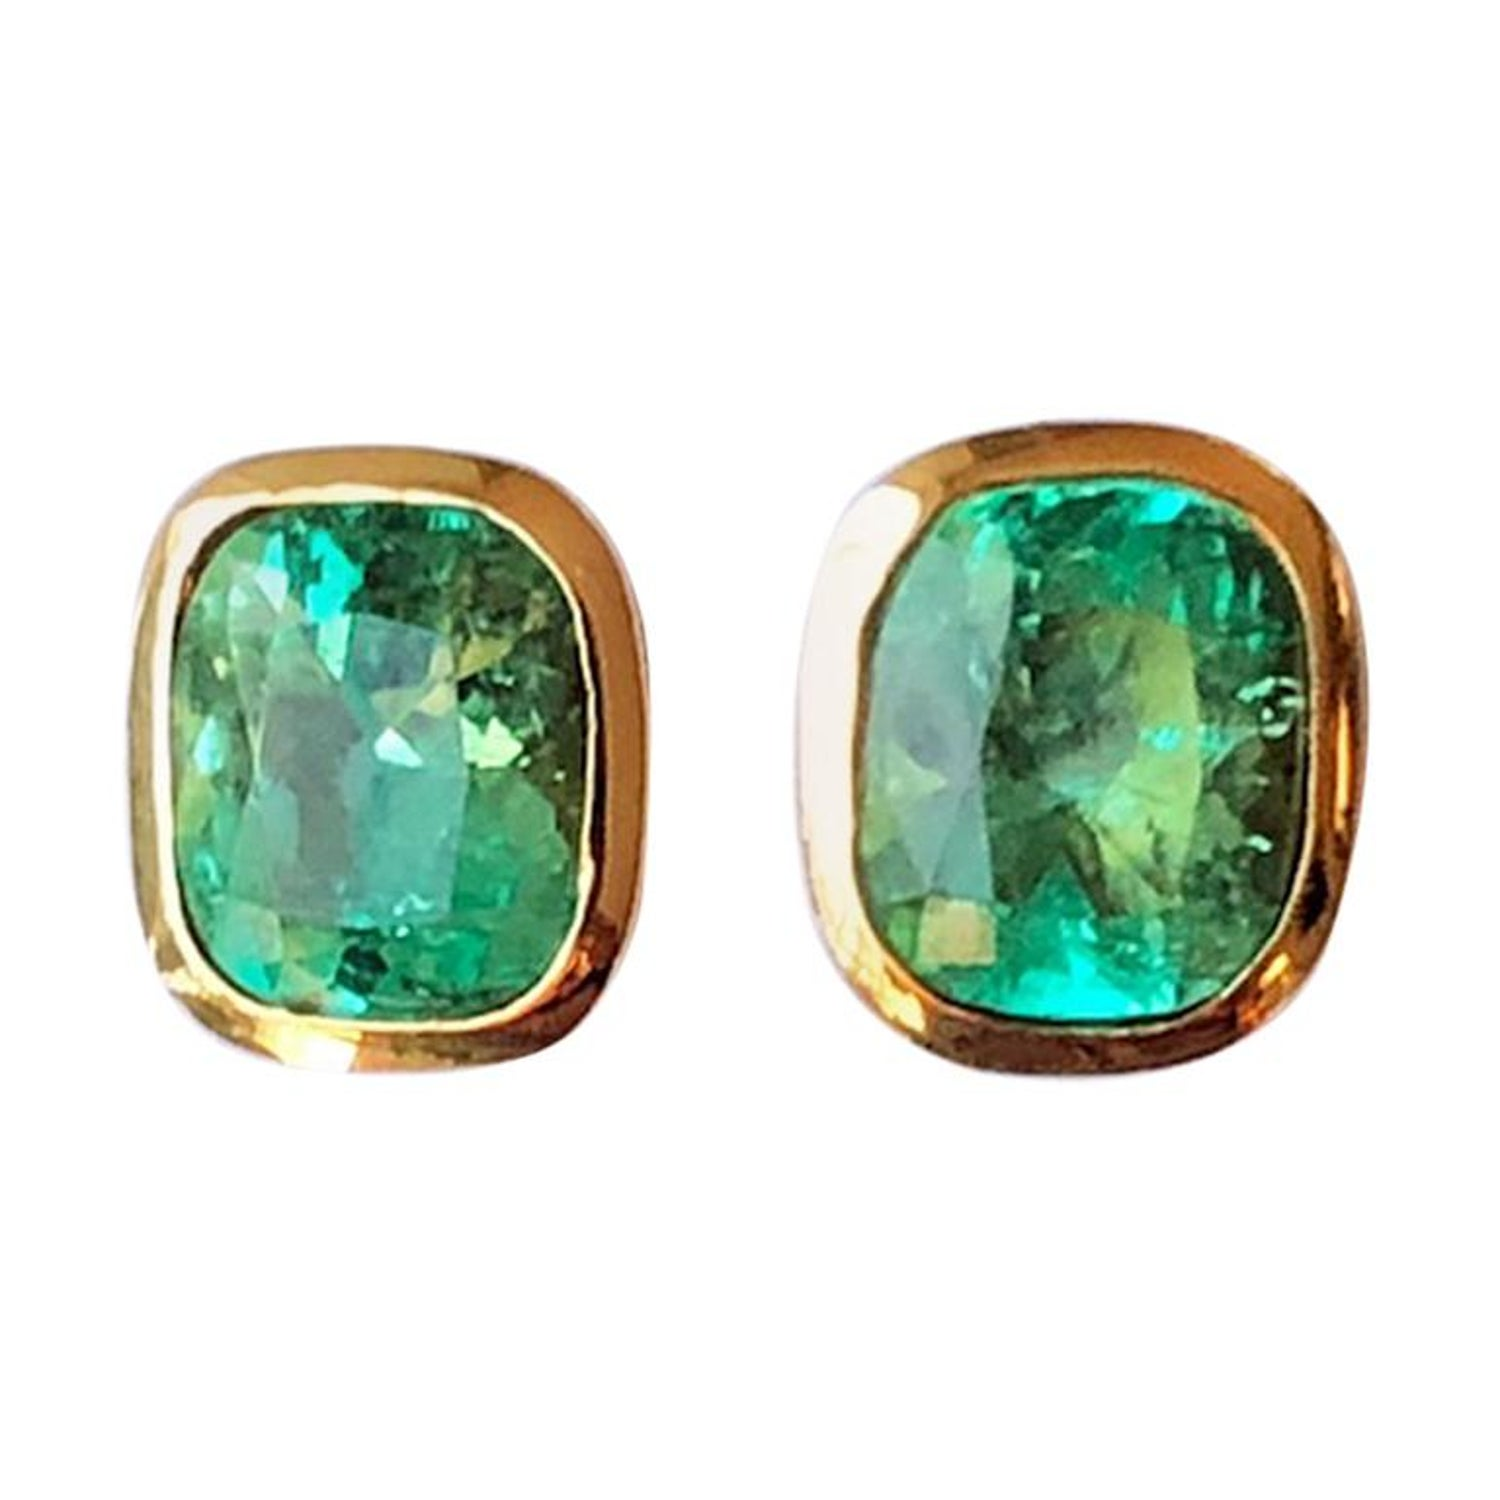 3 67 Carat Exclusive Cushion Colombian Emerald Stud Earrings 18 Karat